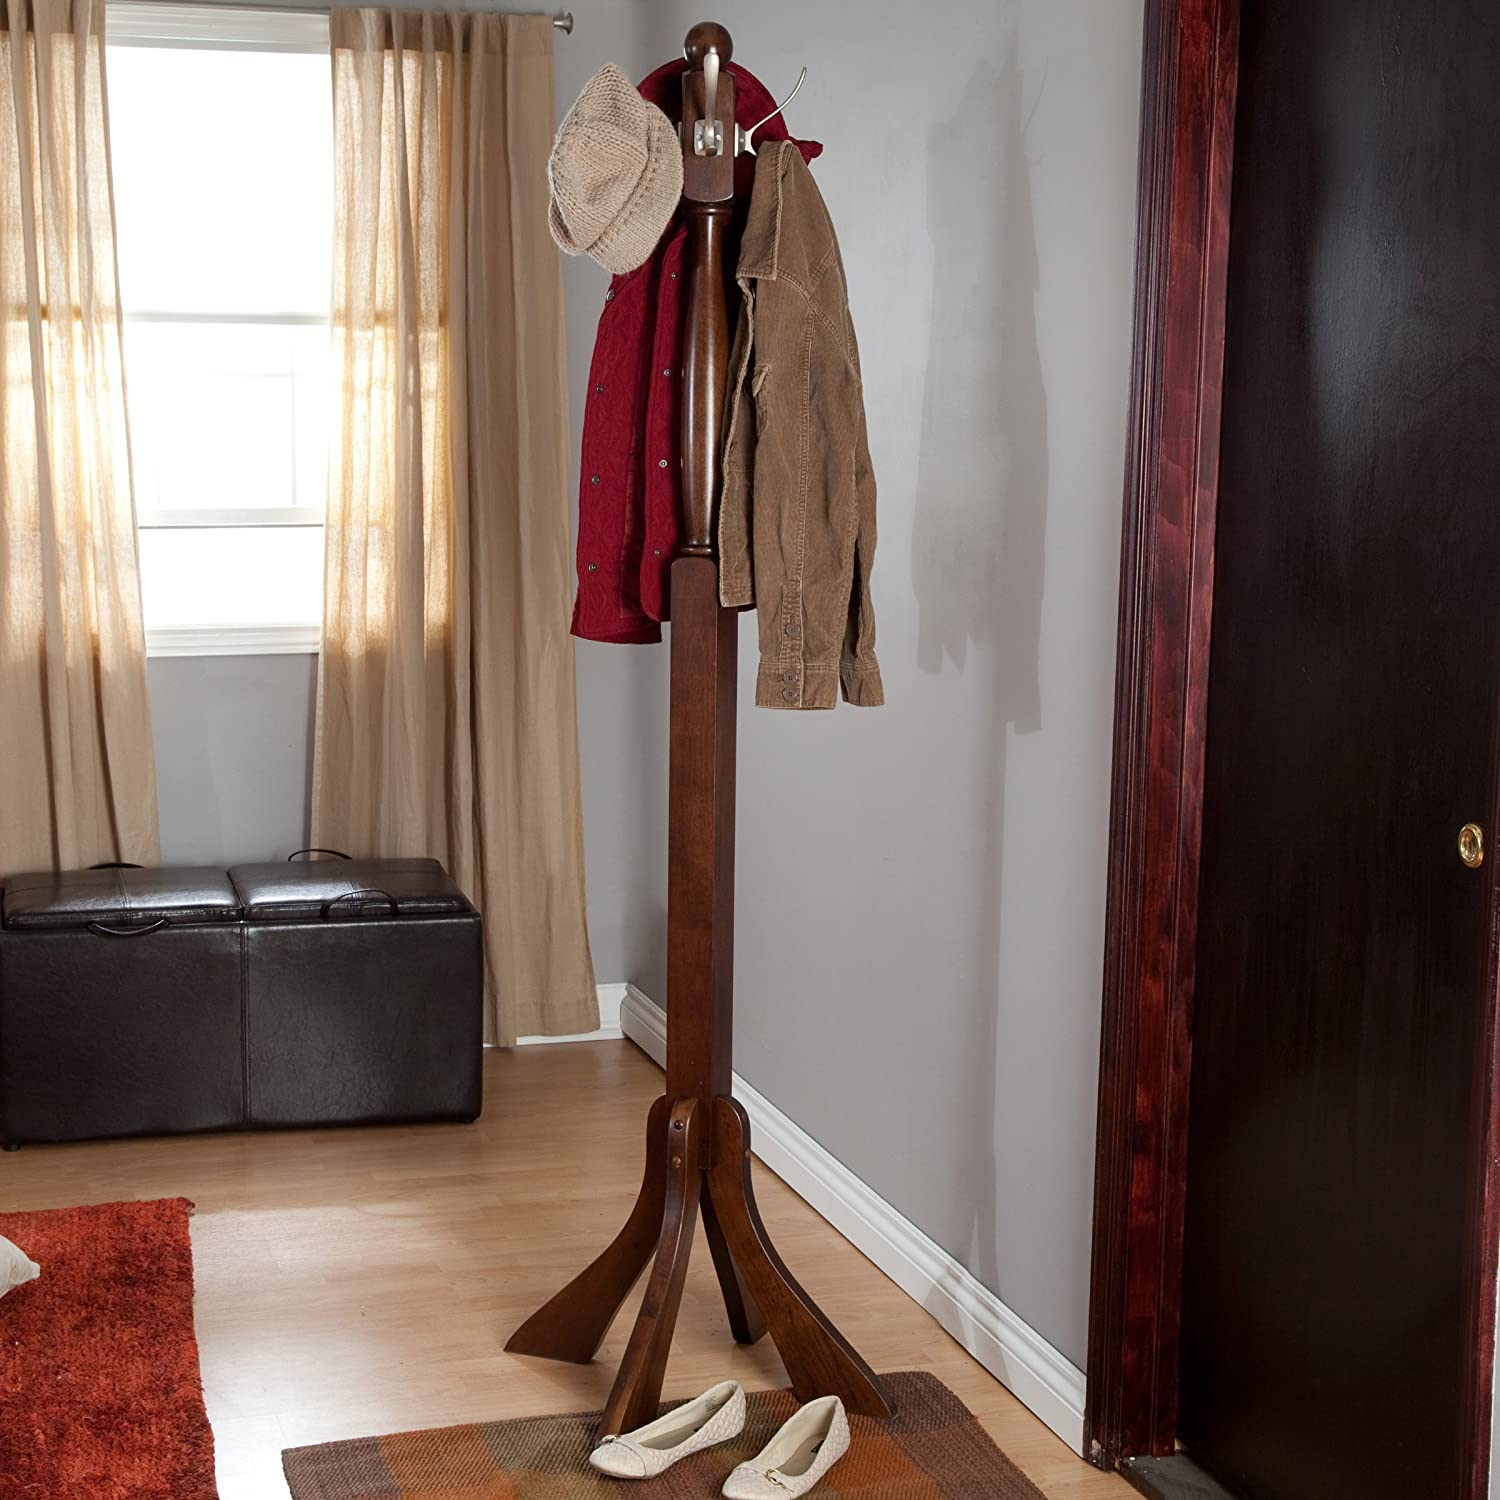 Free-standing Coat Rack From Solid Wood, with Metal Hook